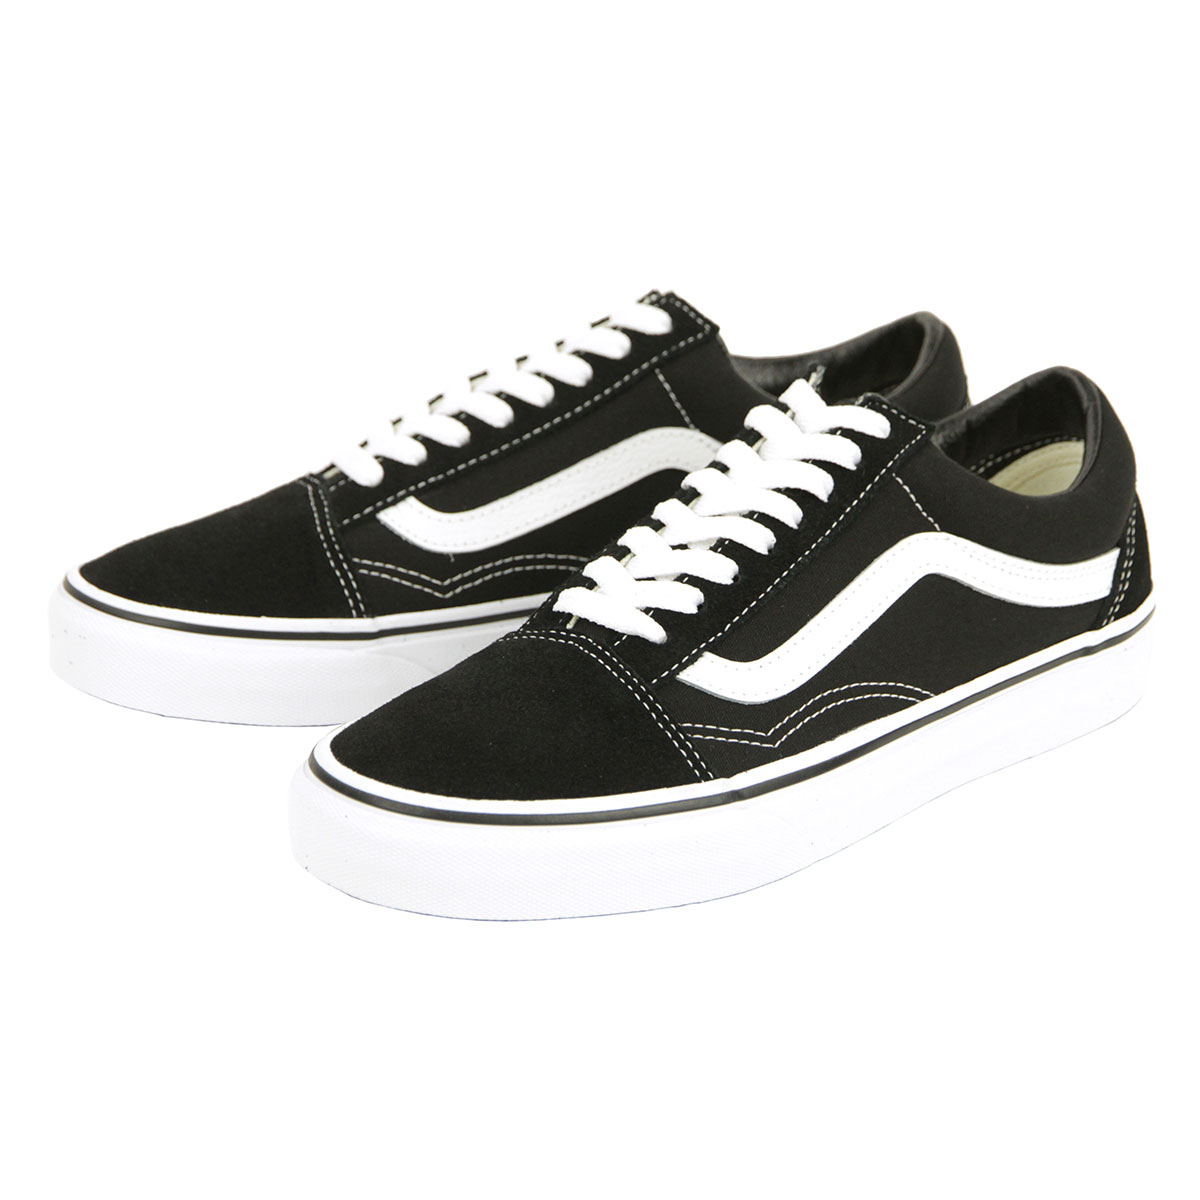 Rakuten Ichiba shop MIXON: Vans VANS regular store men ...